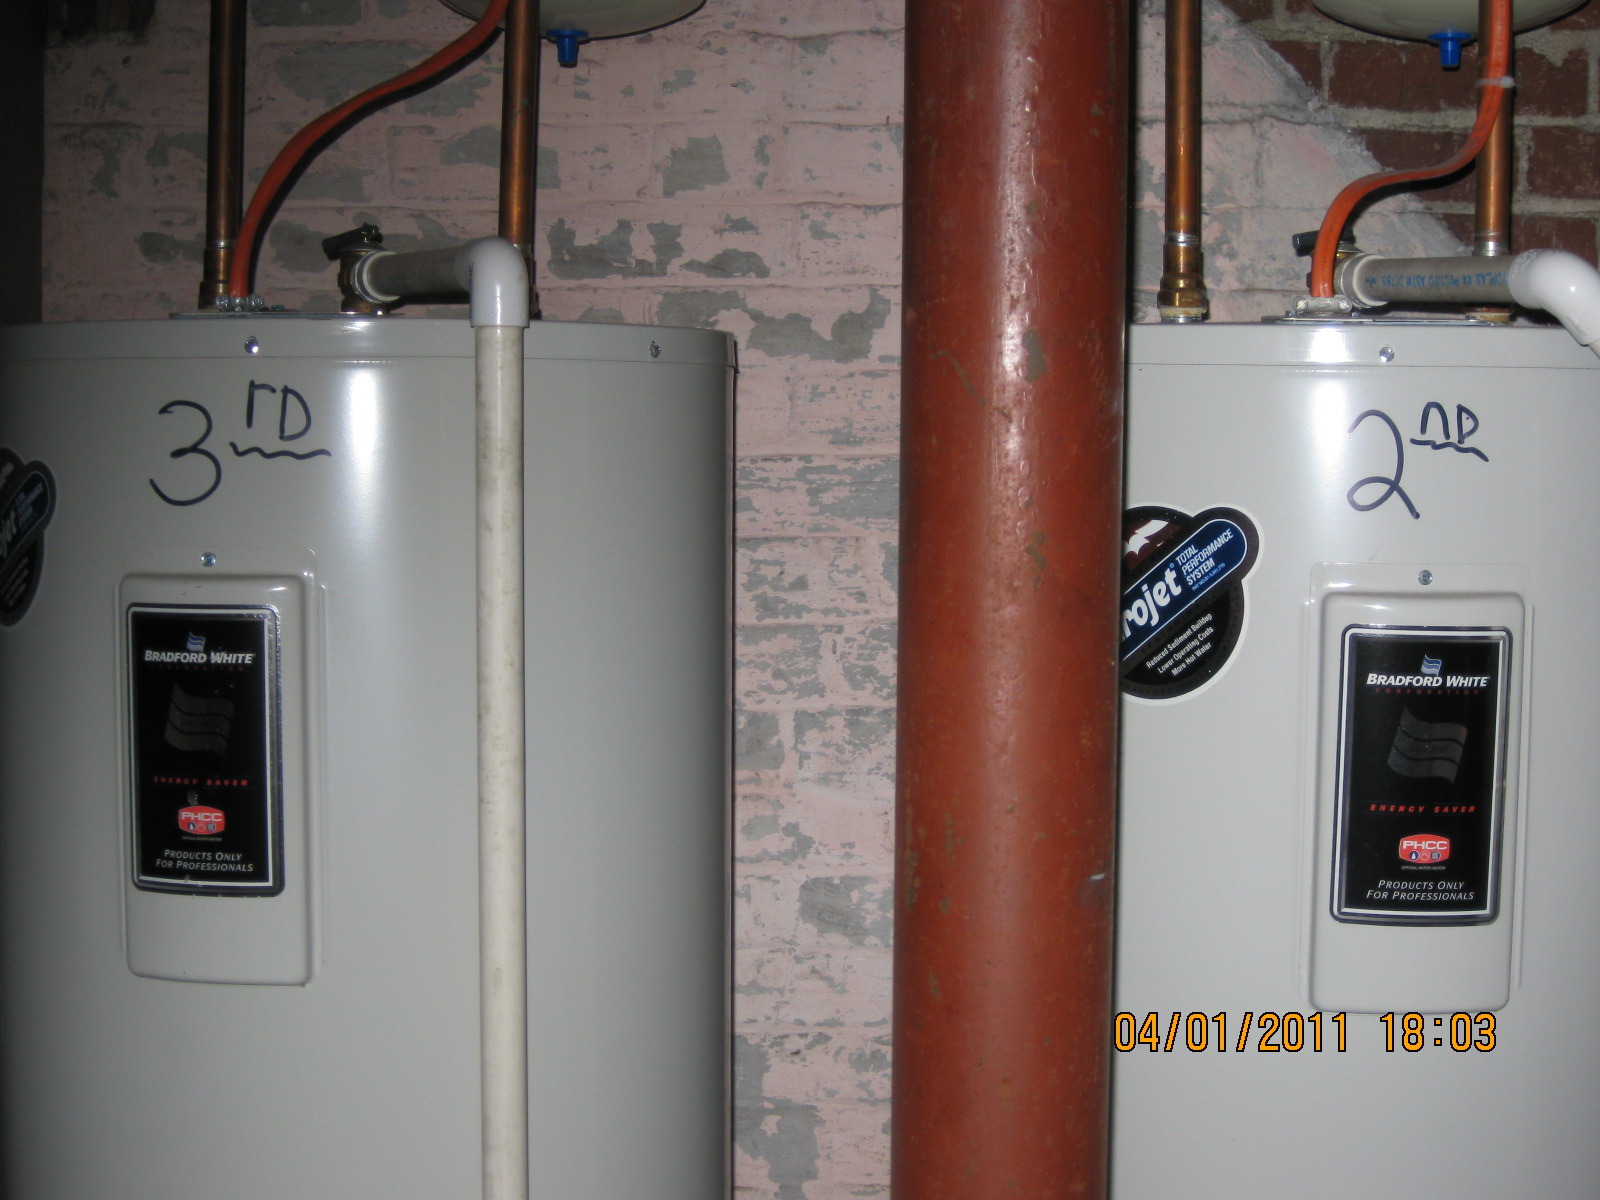 Installing a gas meter in the apartment. Household gas meters 21